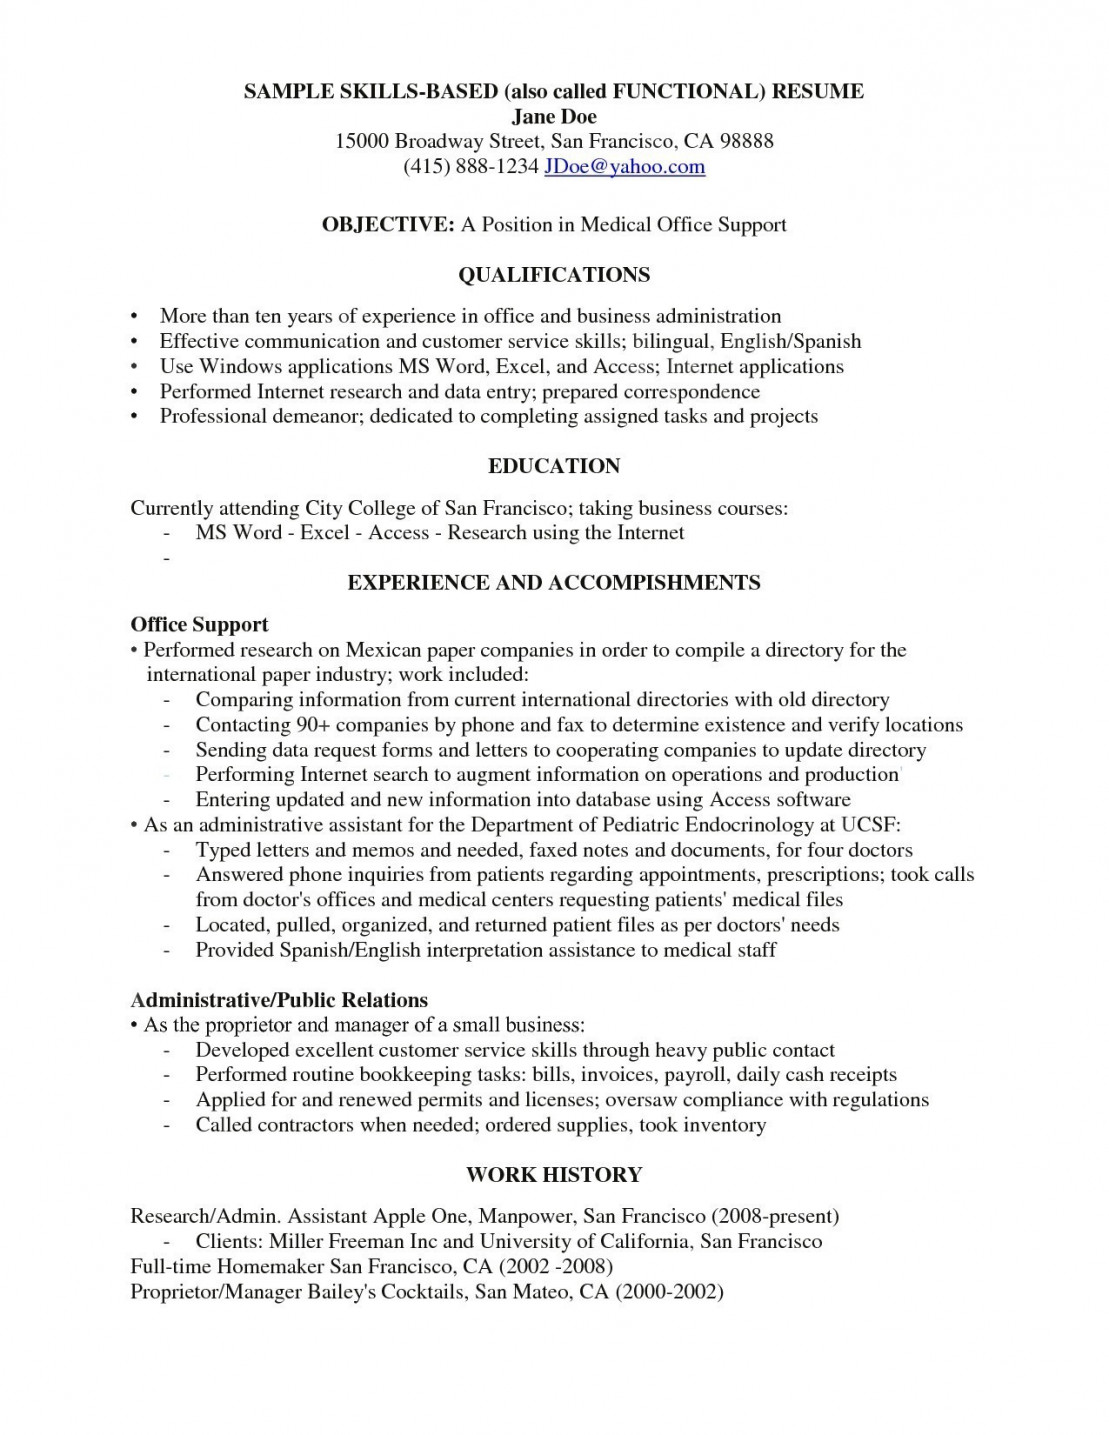 resume objective examples template builder example caregiver objectives templates samples Resume Caregiver Objectives Resume Templates Examples